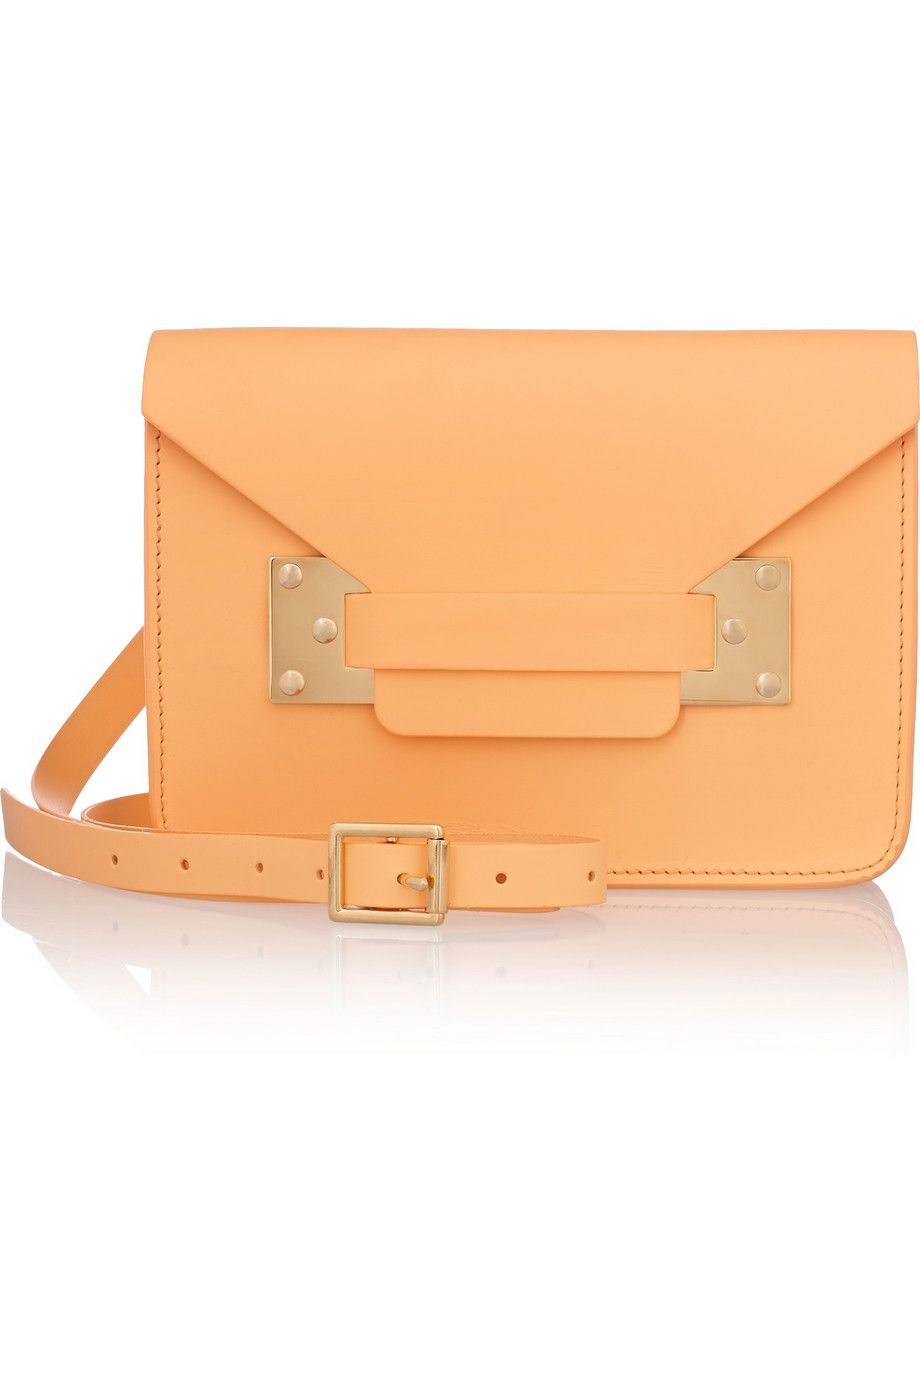 25 Candy-Colored Bags to Sweeten Up YourSpring